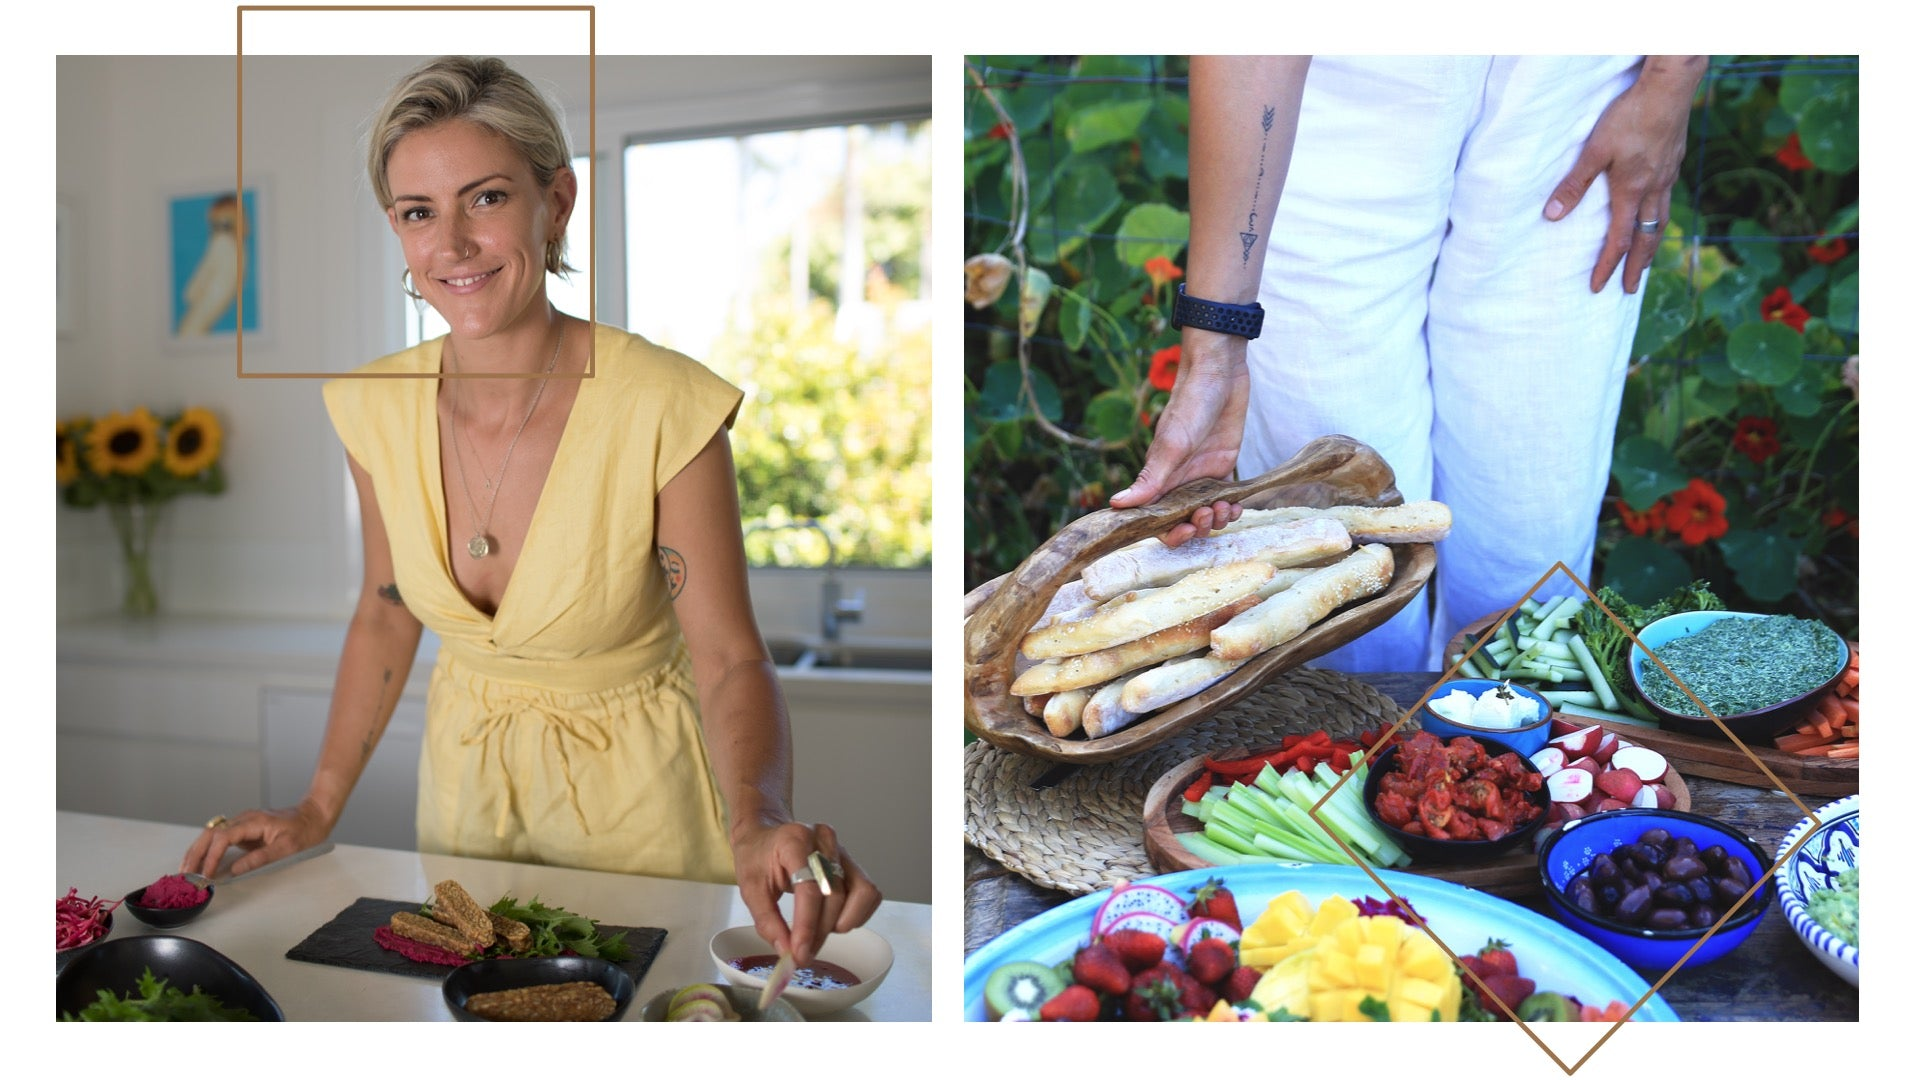 Lucie Dawson in her kitchen and setting a beautiful, colorful table of healthy treats